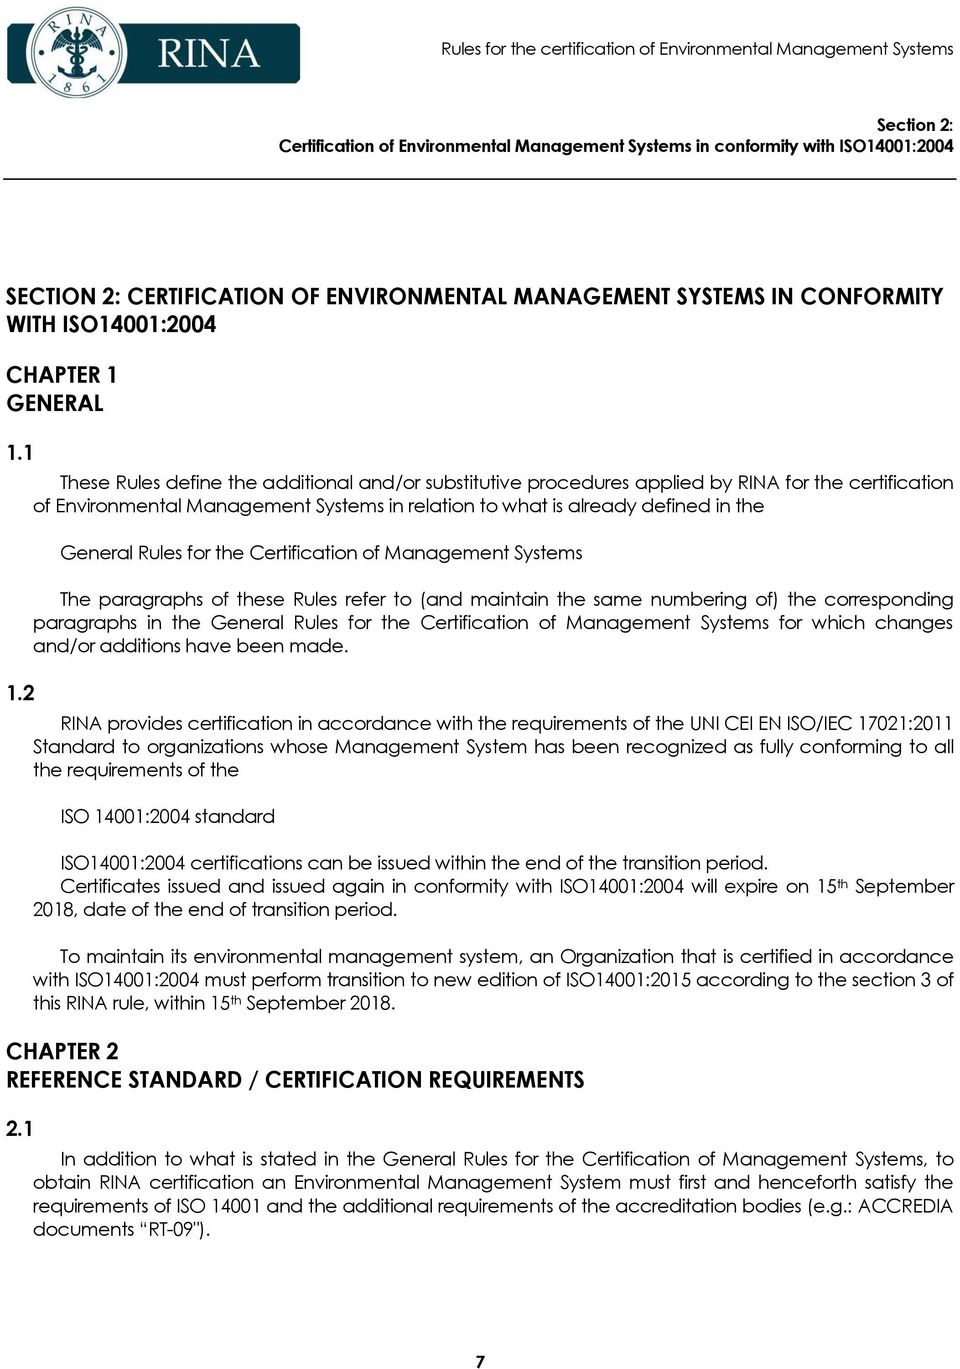 2 These Rules define the additional and/or substitutive procedures applied by RINA for the certification of Environmental Management Systems in relation to what is already defined in the General